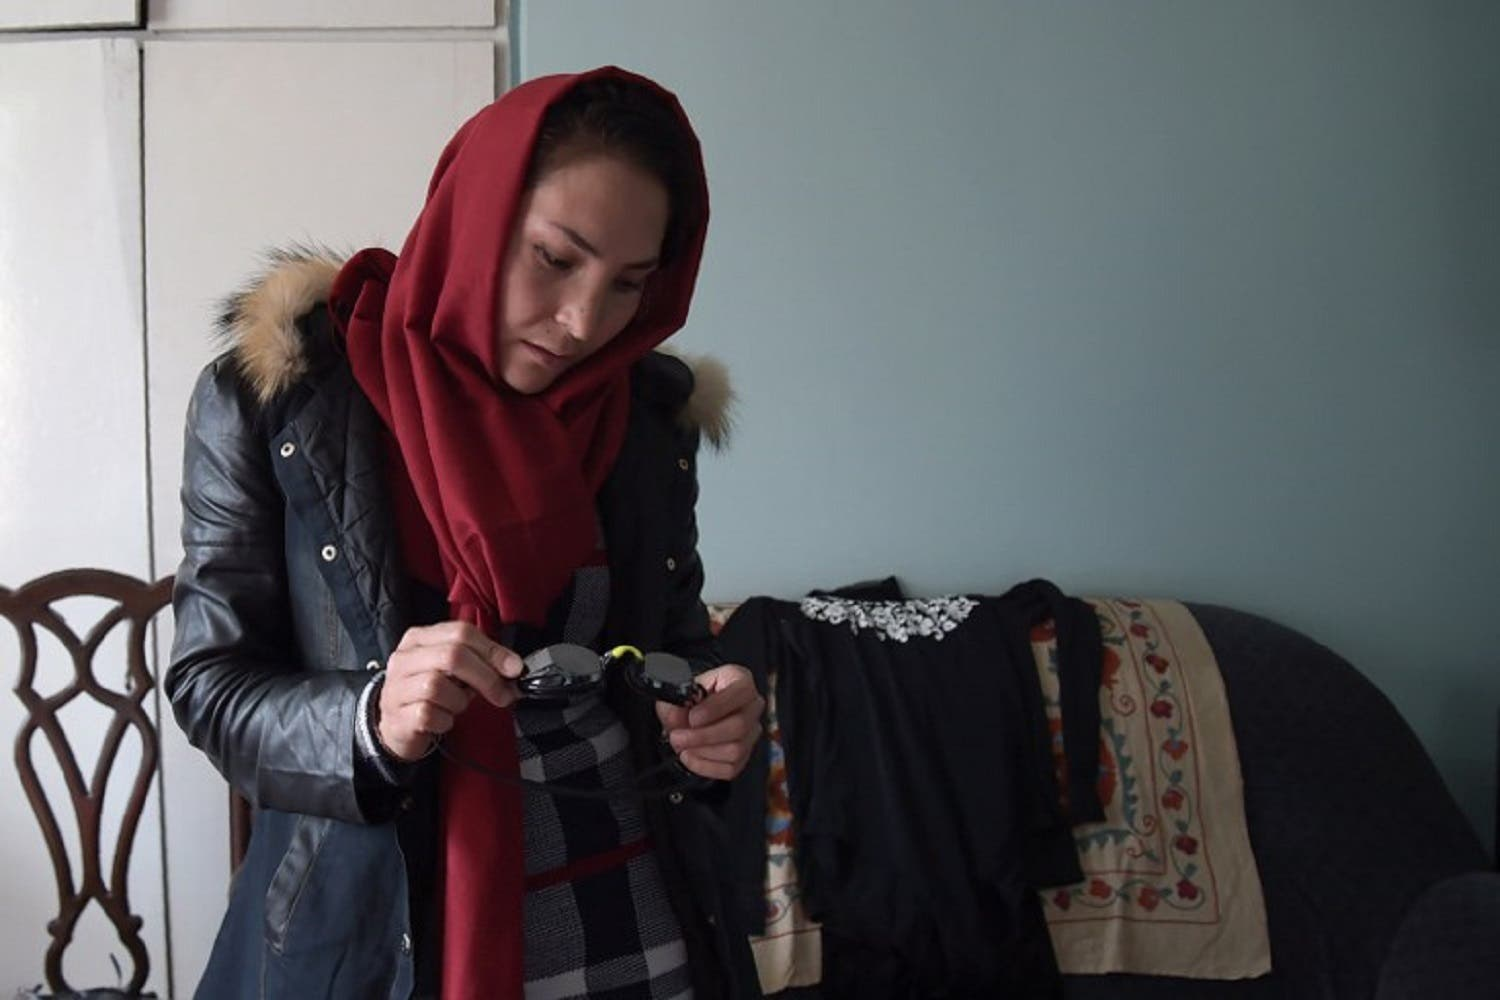 Afghan swimmer and Coach Elena Saboori, 25, holds her goggles during an interview with AFP in a house in Kabul. (AFP)